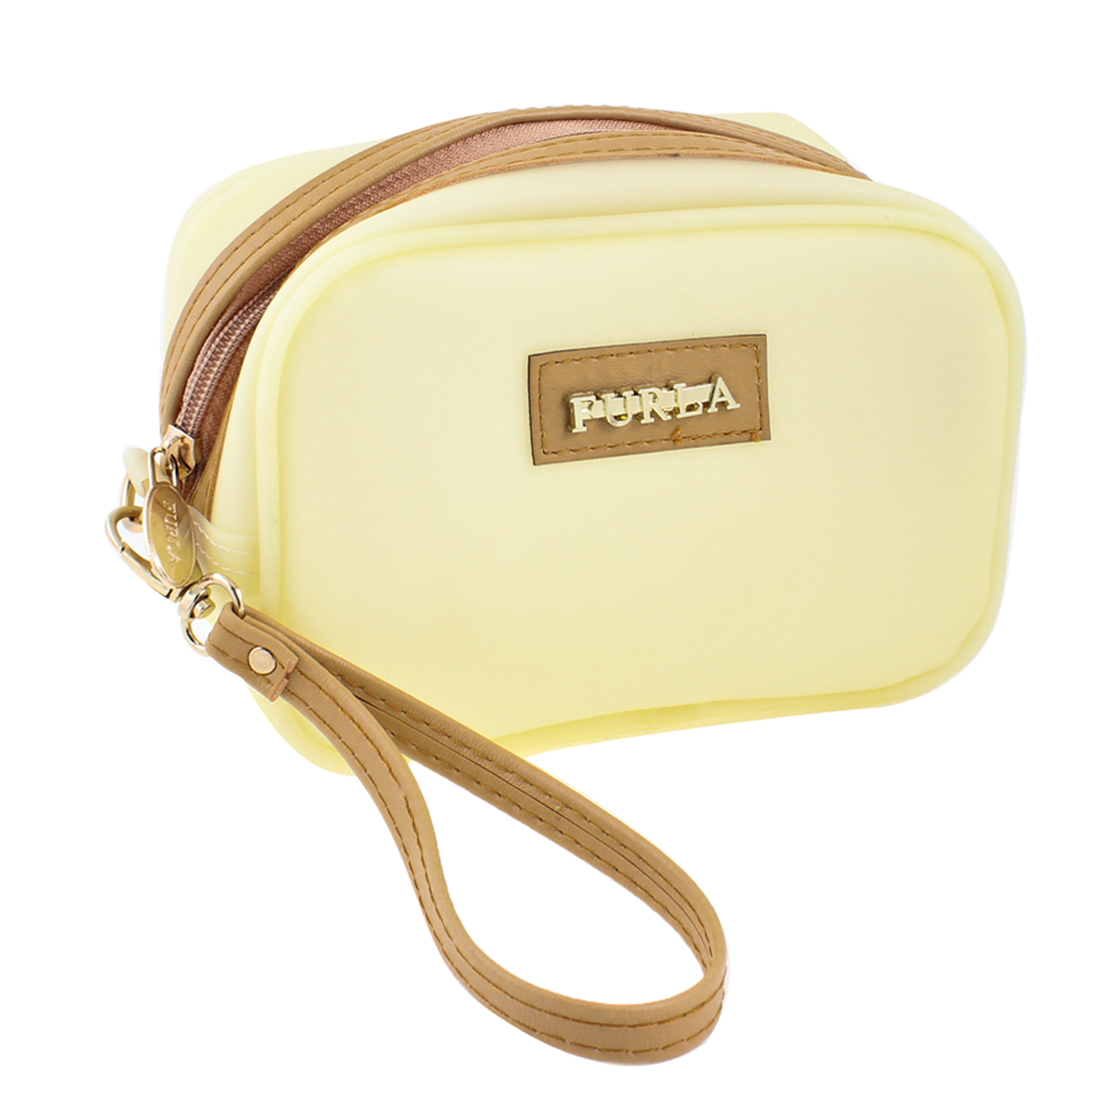 Lady Faux Leather Zip Up Make Up Cosmetic Bag w Removeable Strap Beige